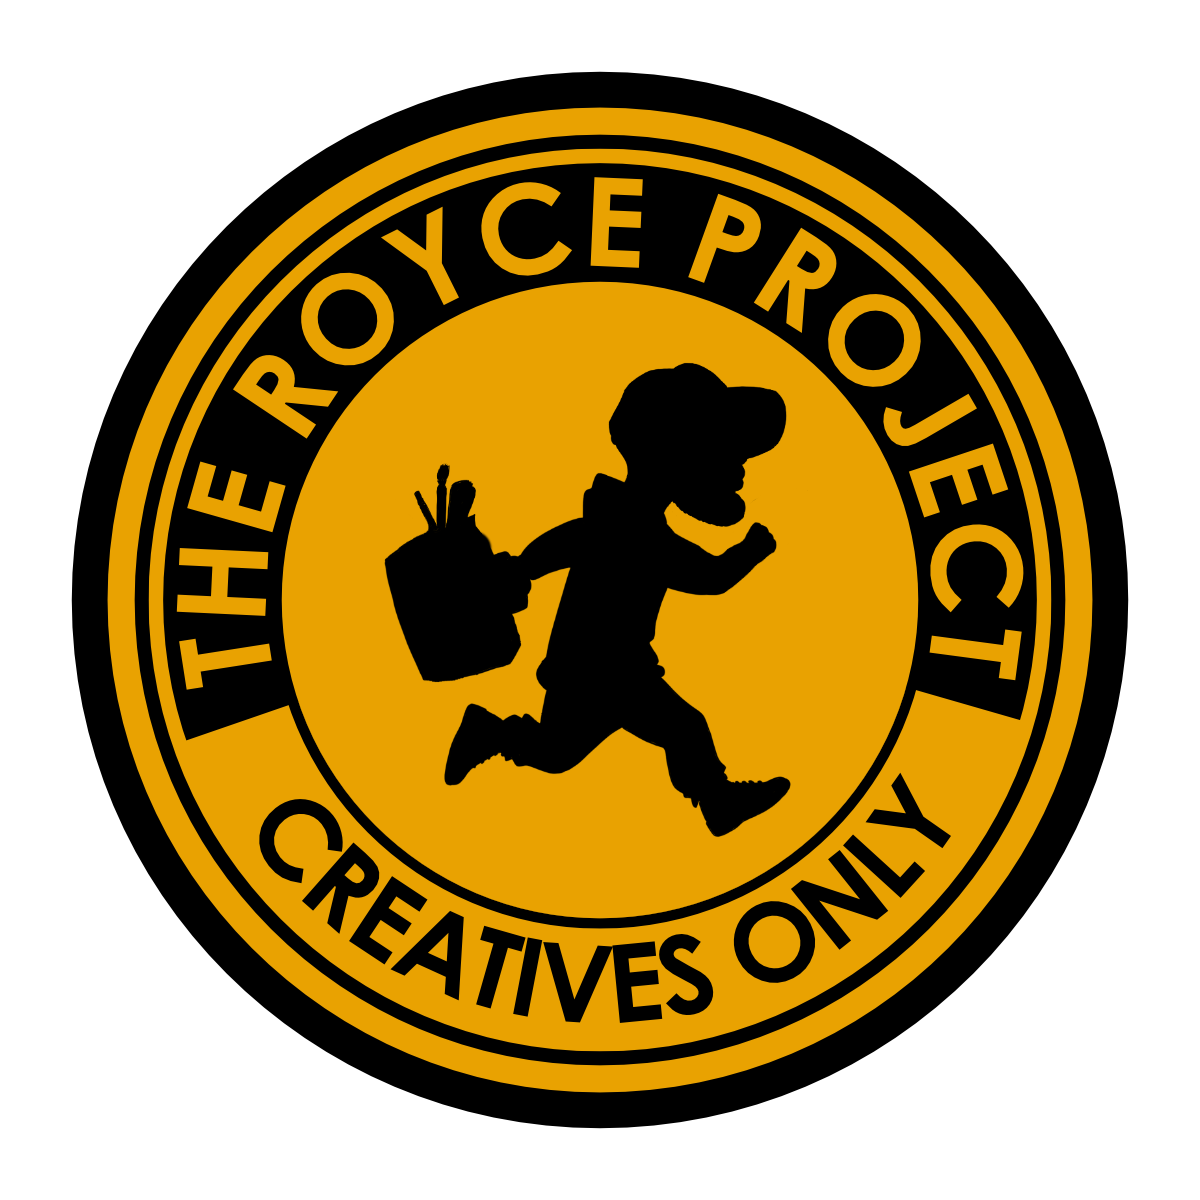 The Royce Project